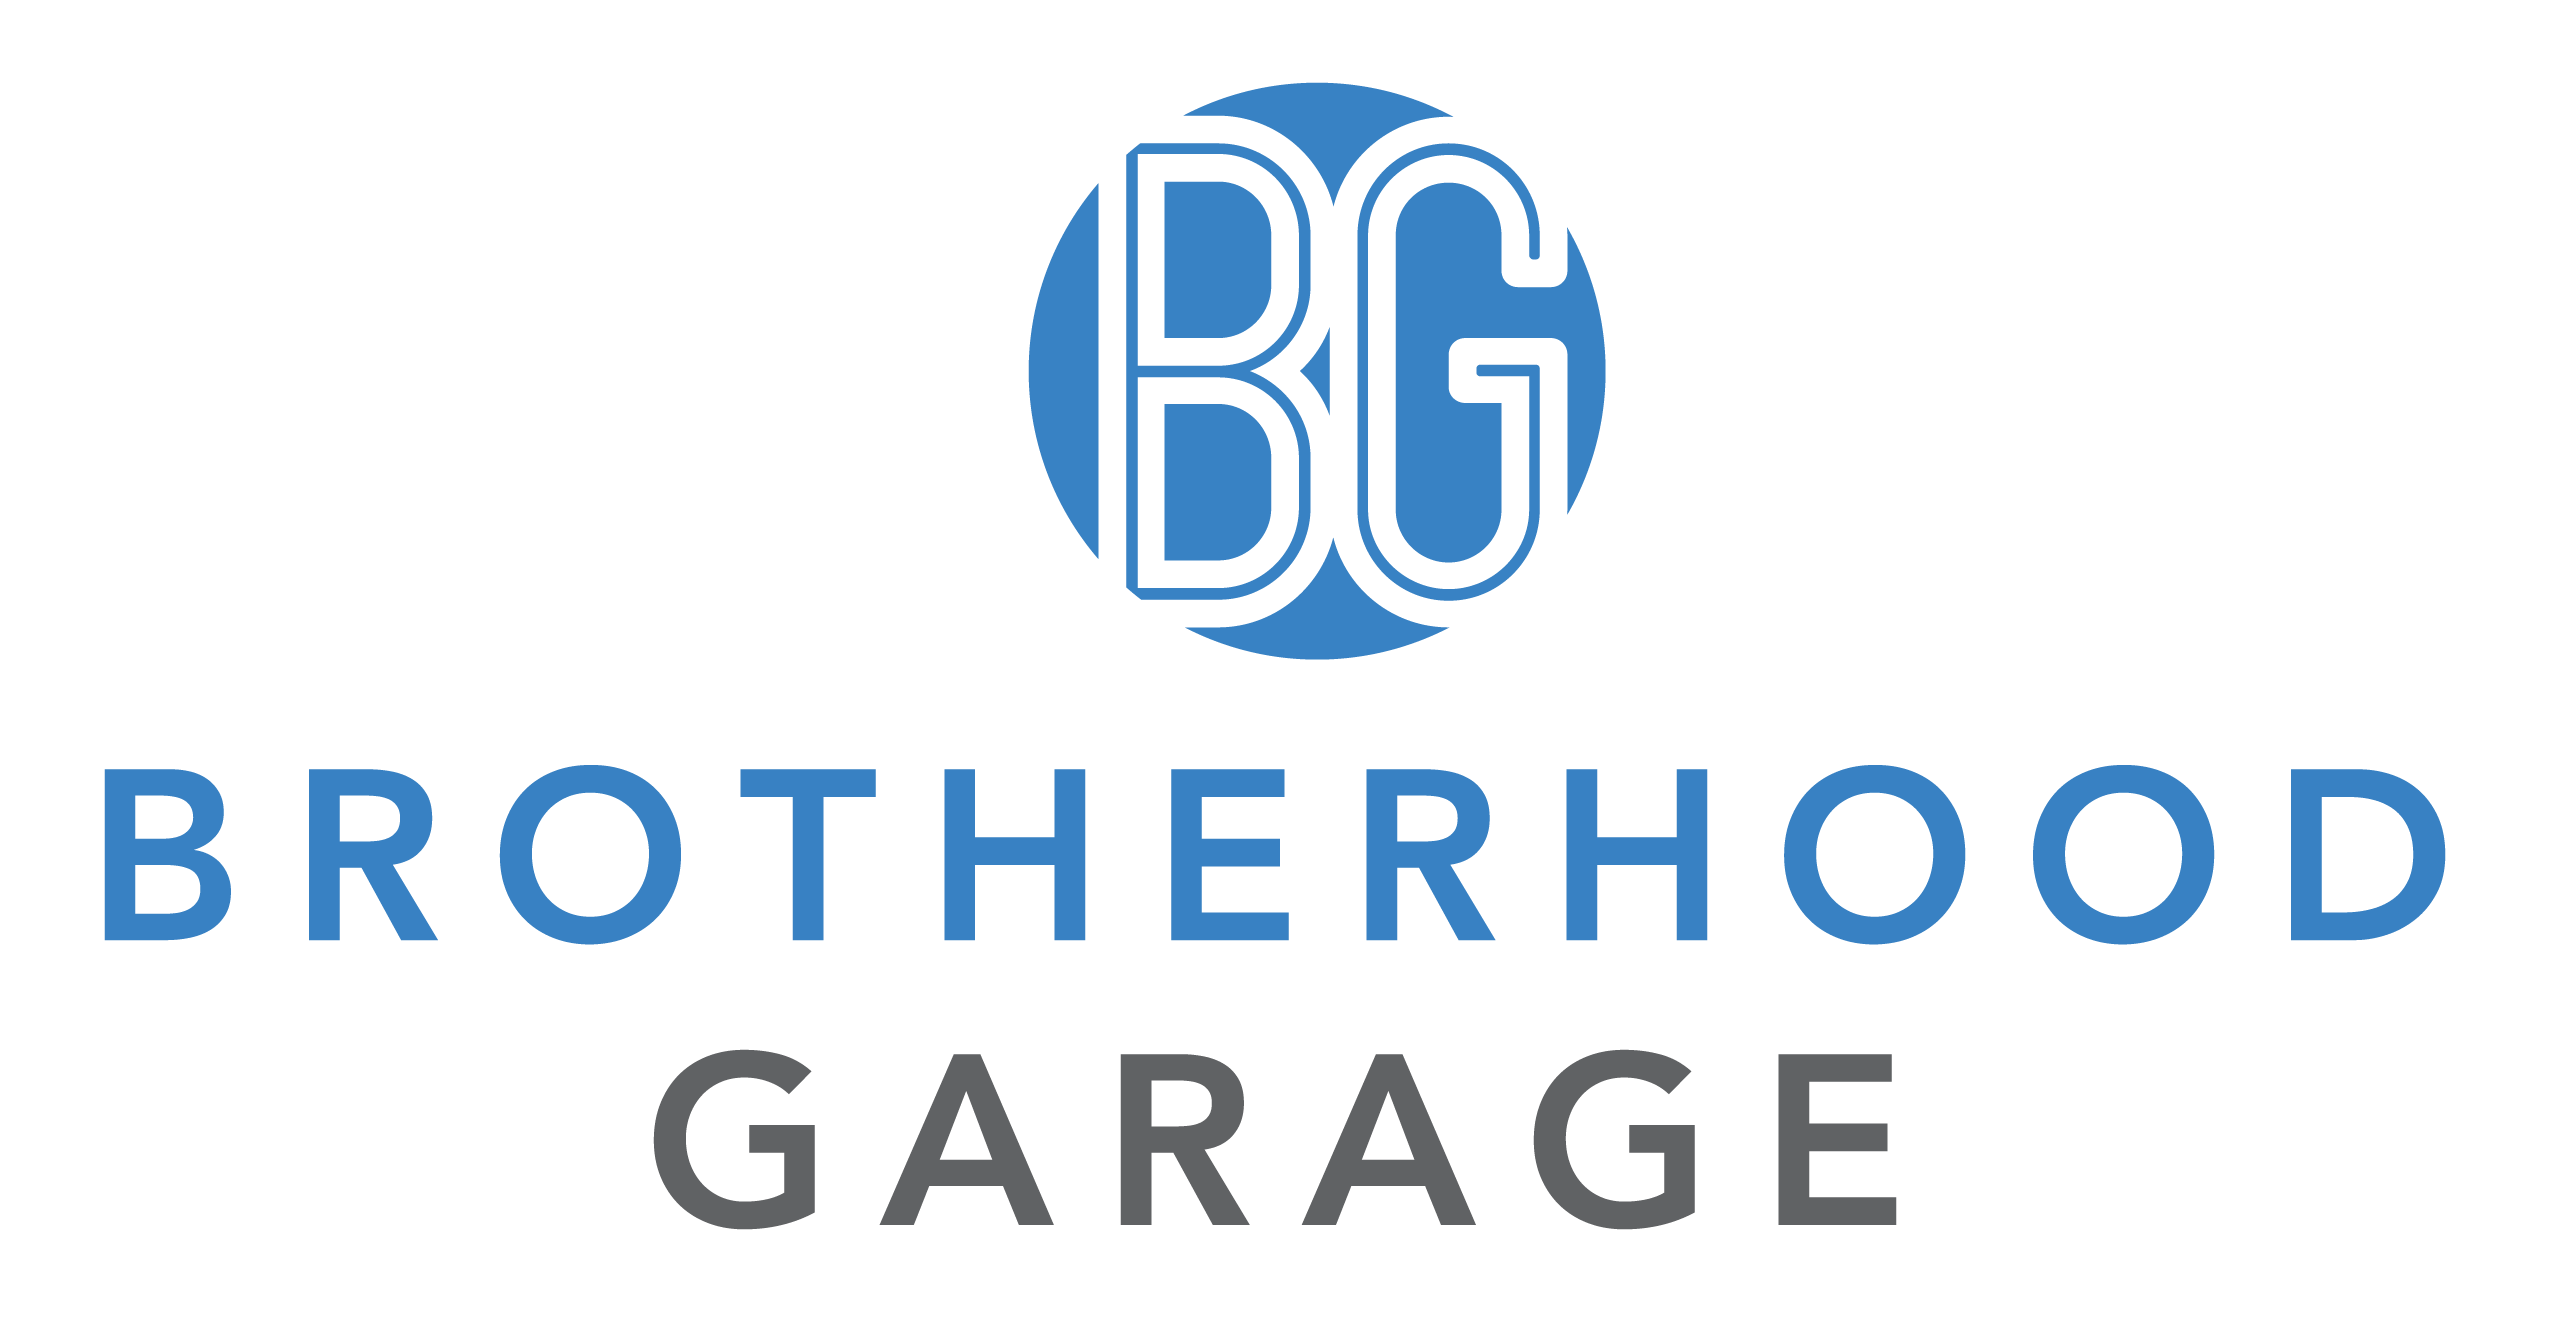 Brotherhood Garage